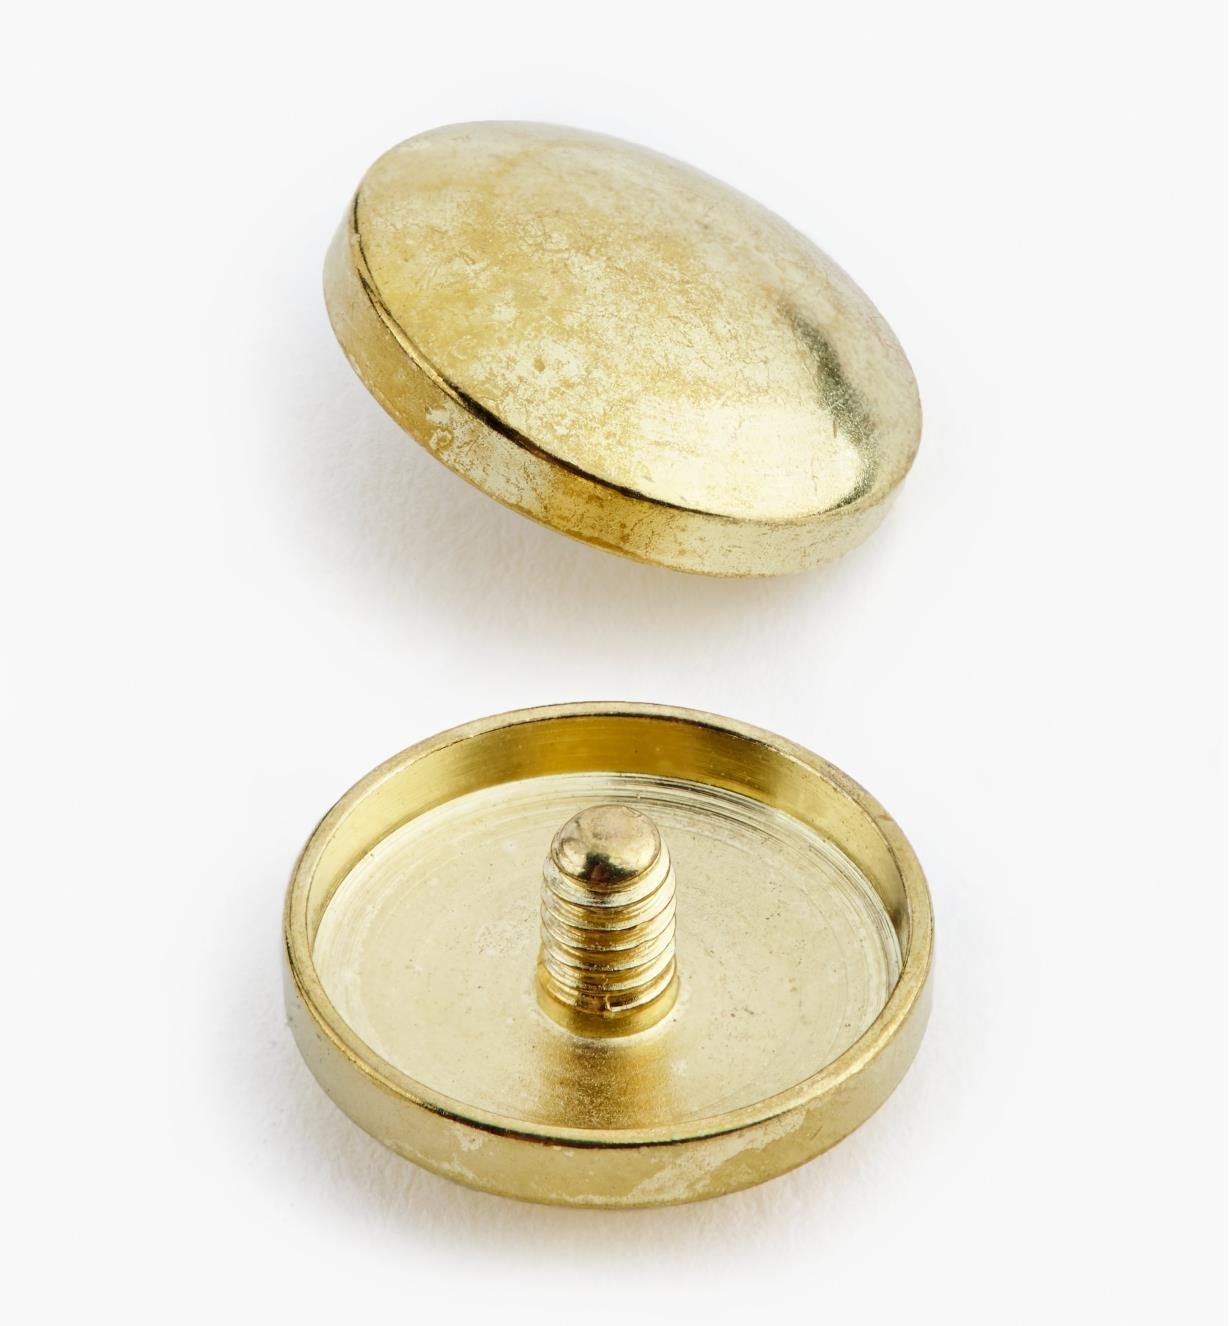 00K4102 - 15mm Brass Caps, pkg. of 24